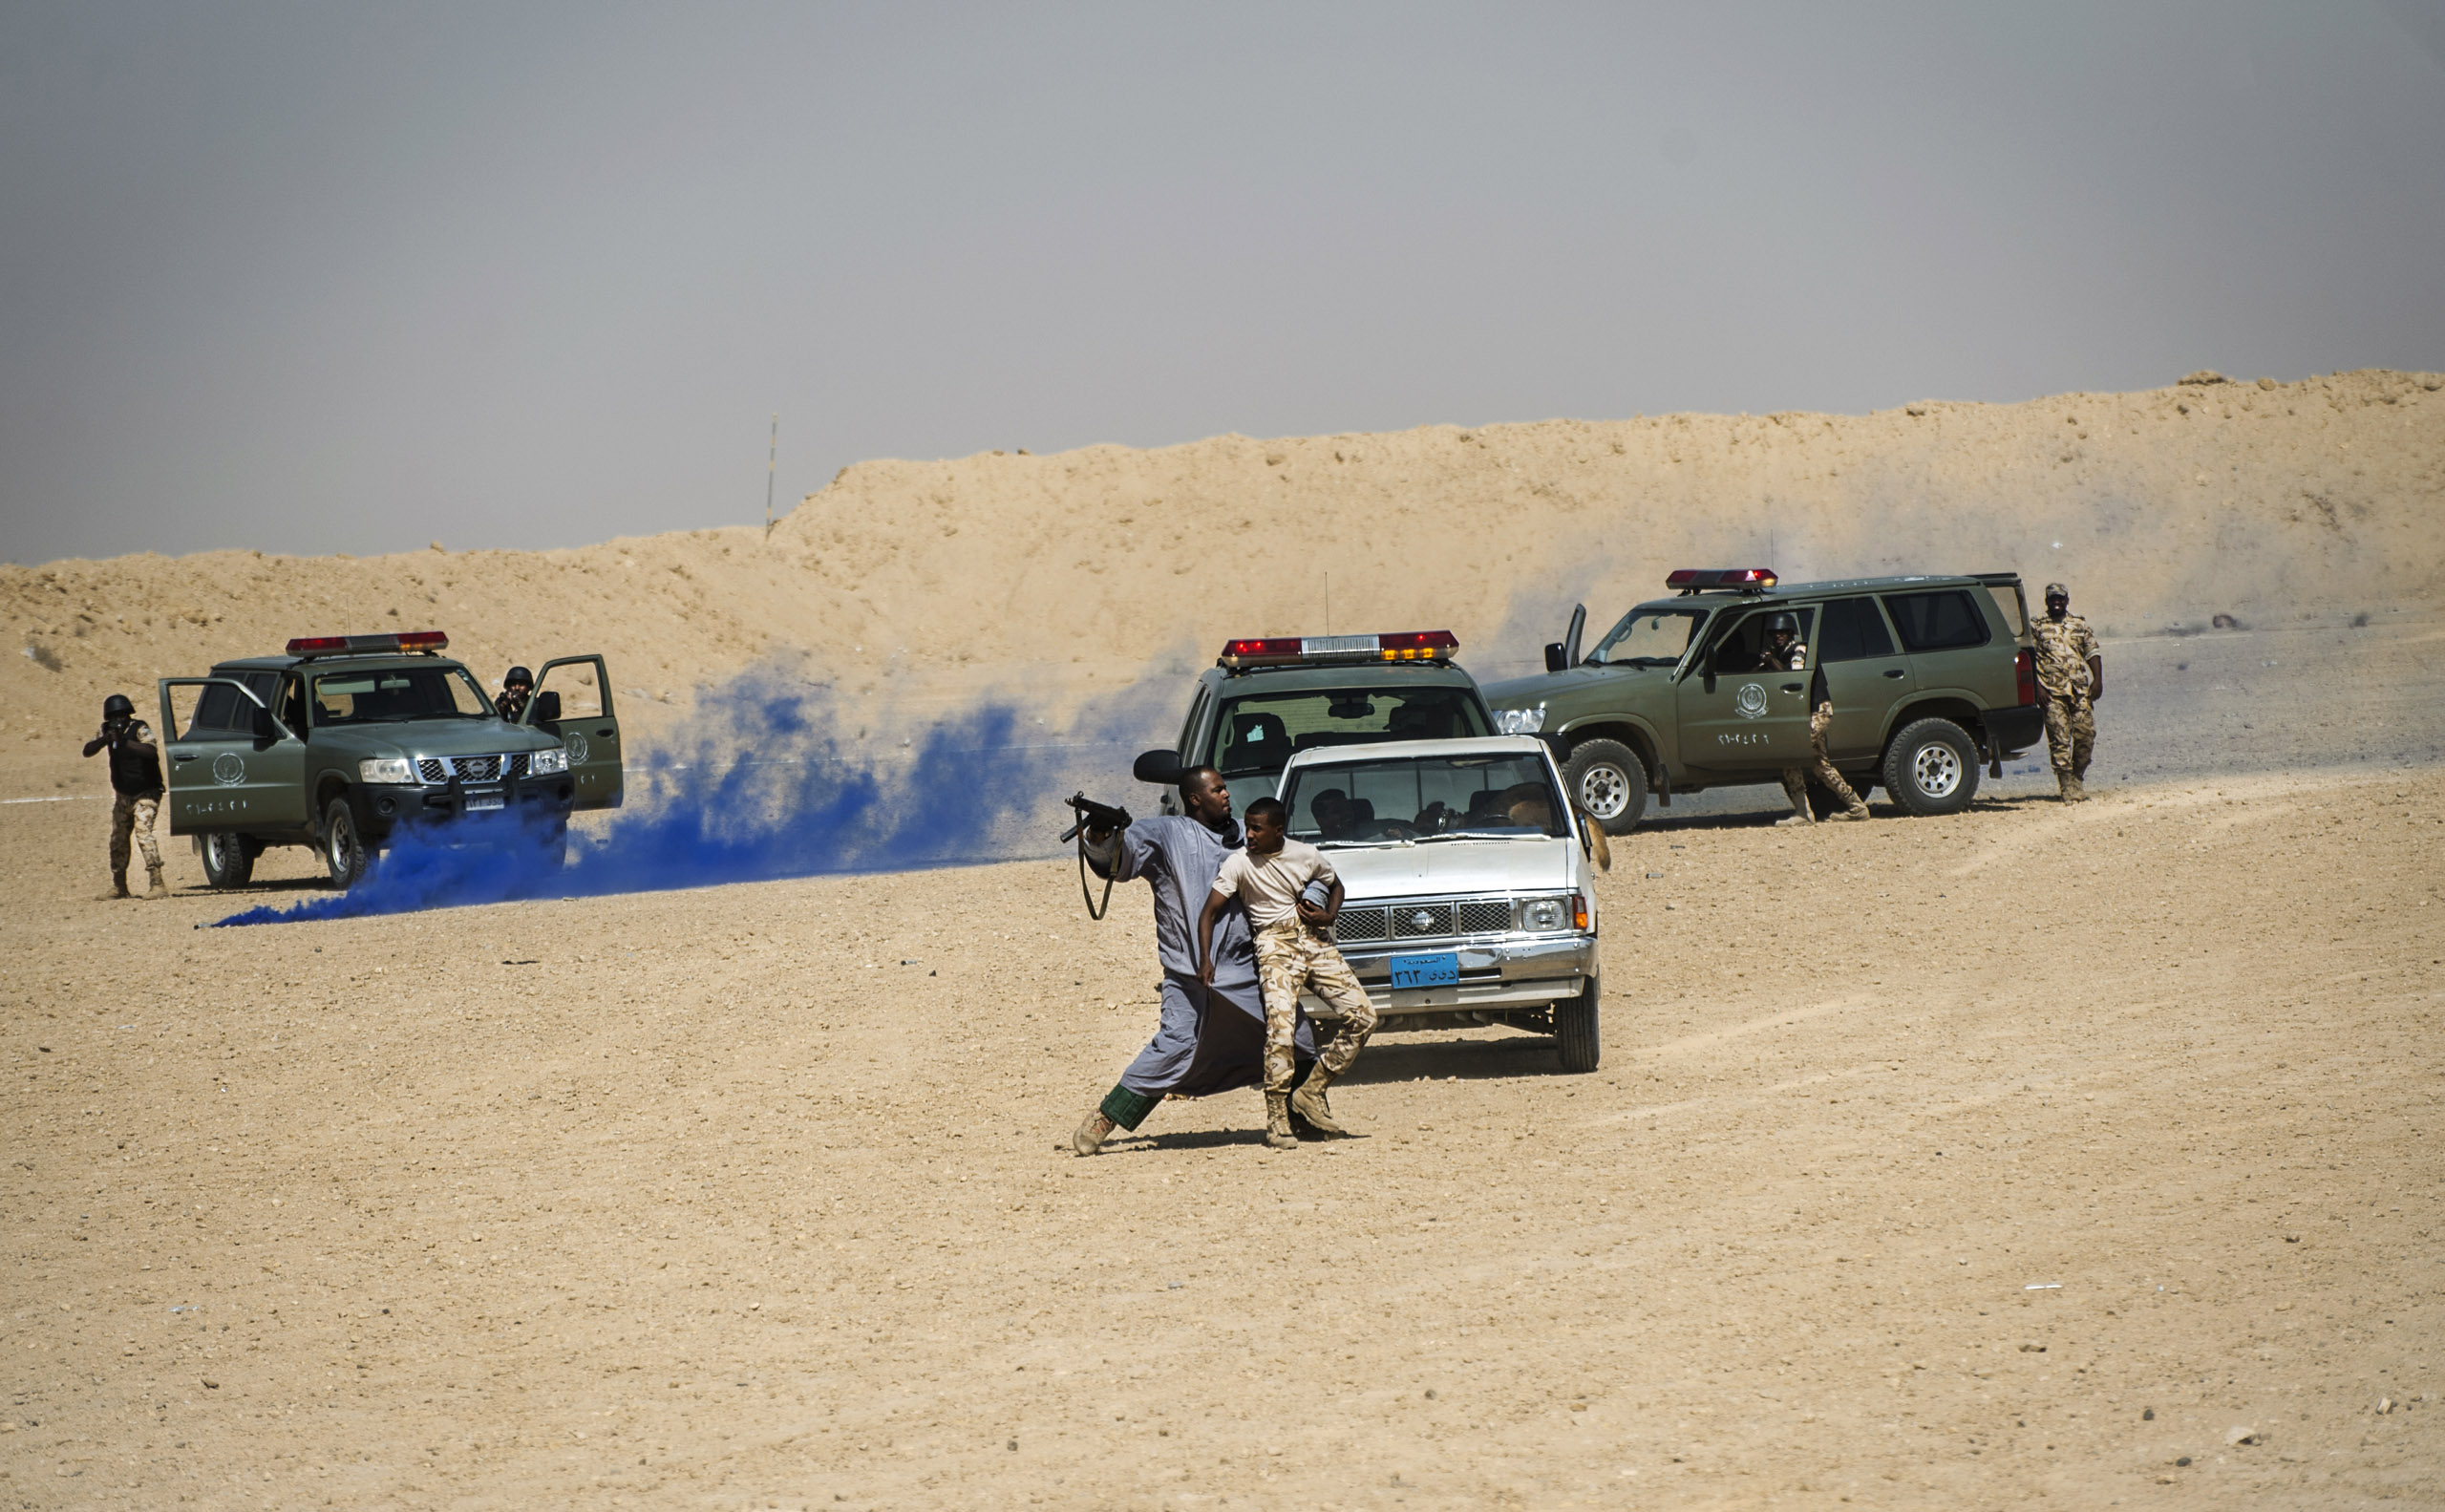 Troops with the Saudi Special Security Forces demonstrate how they respond to a hostage situation, March 5, 2013.